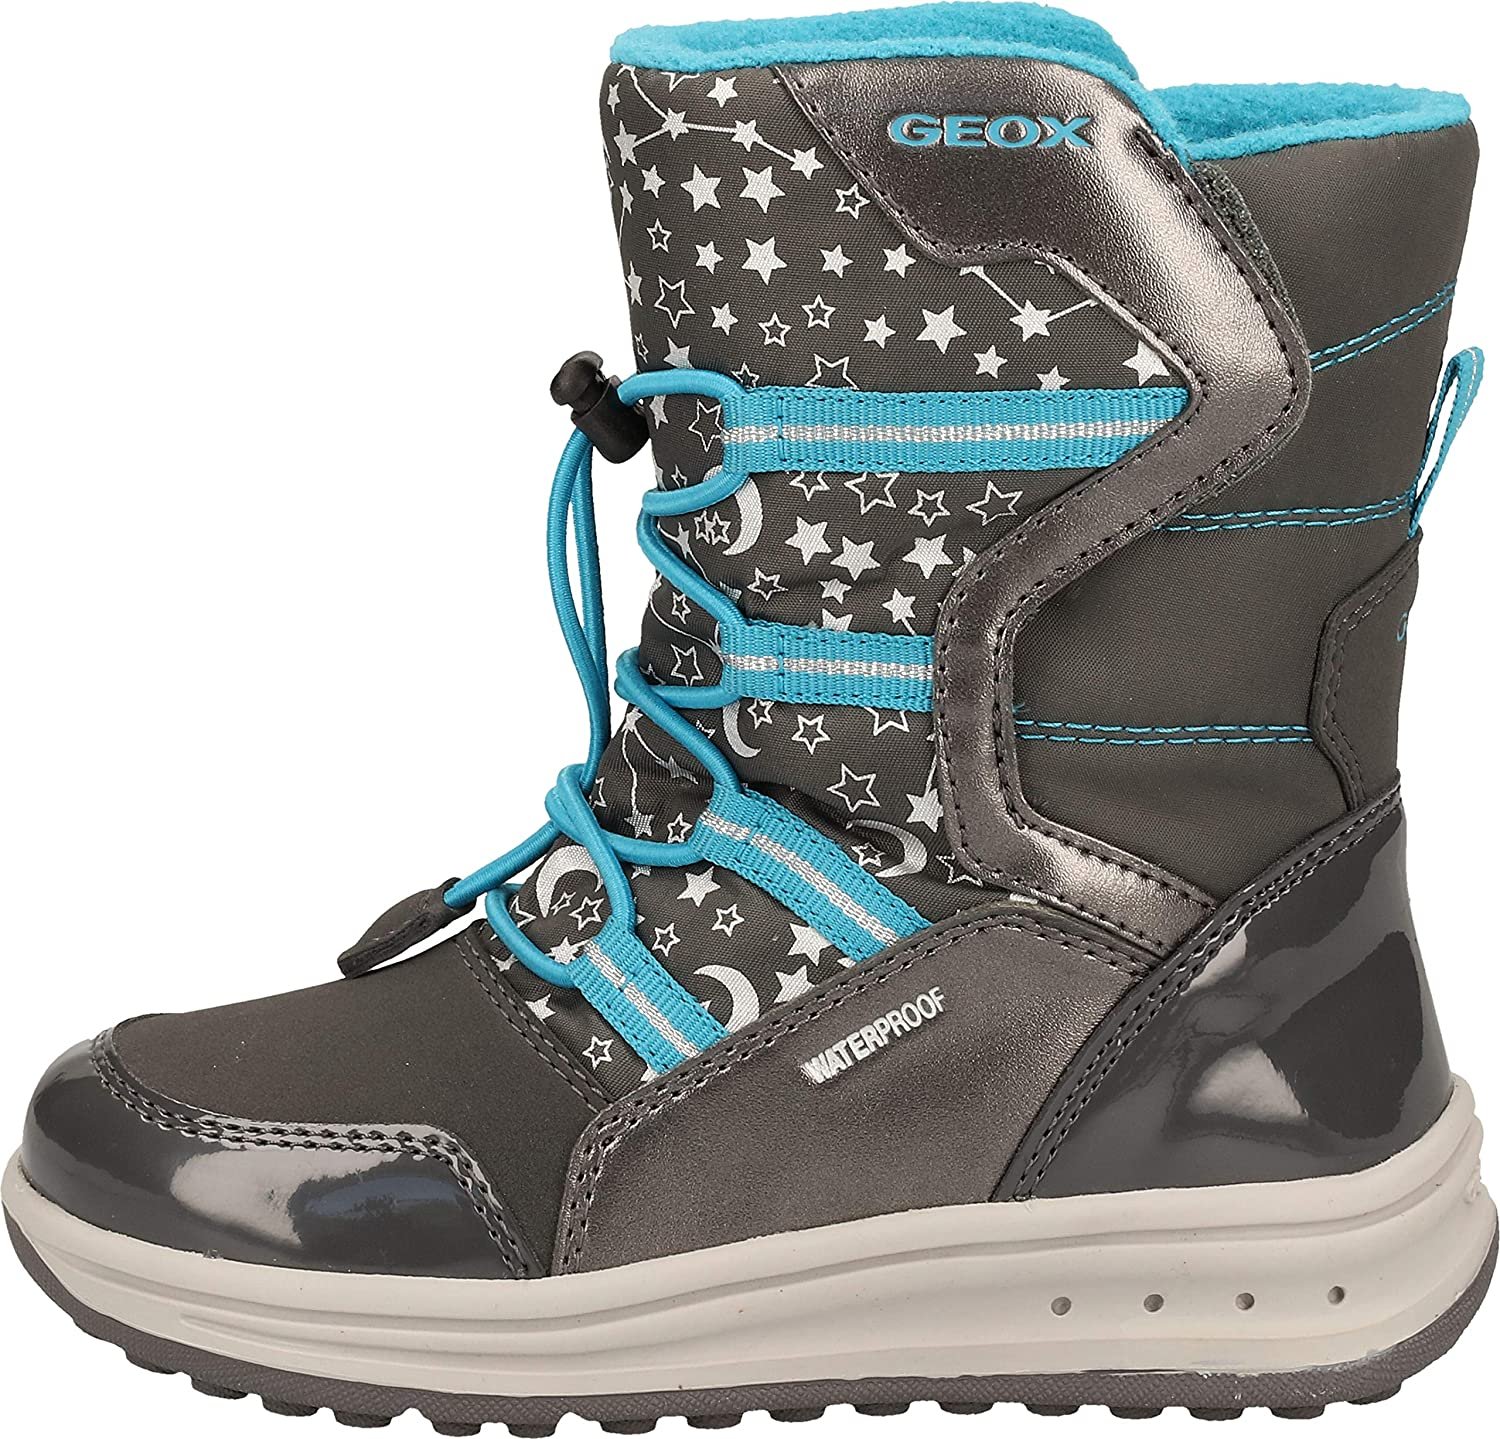 Cercanamente galope Habubu  Geox Girl Boots Baltic Girl WPF, Winter Boots, Removable Insole,  Waterproof: Amazon.co.uk: Shoes & Bags